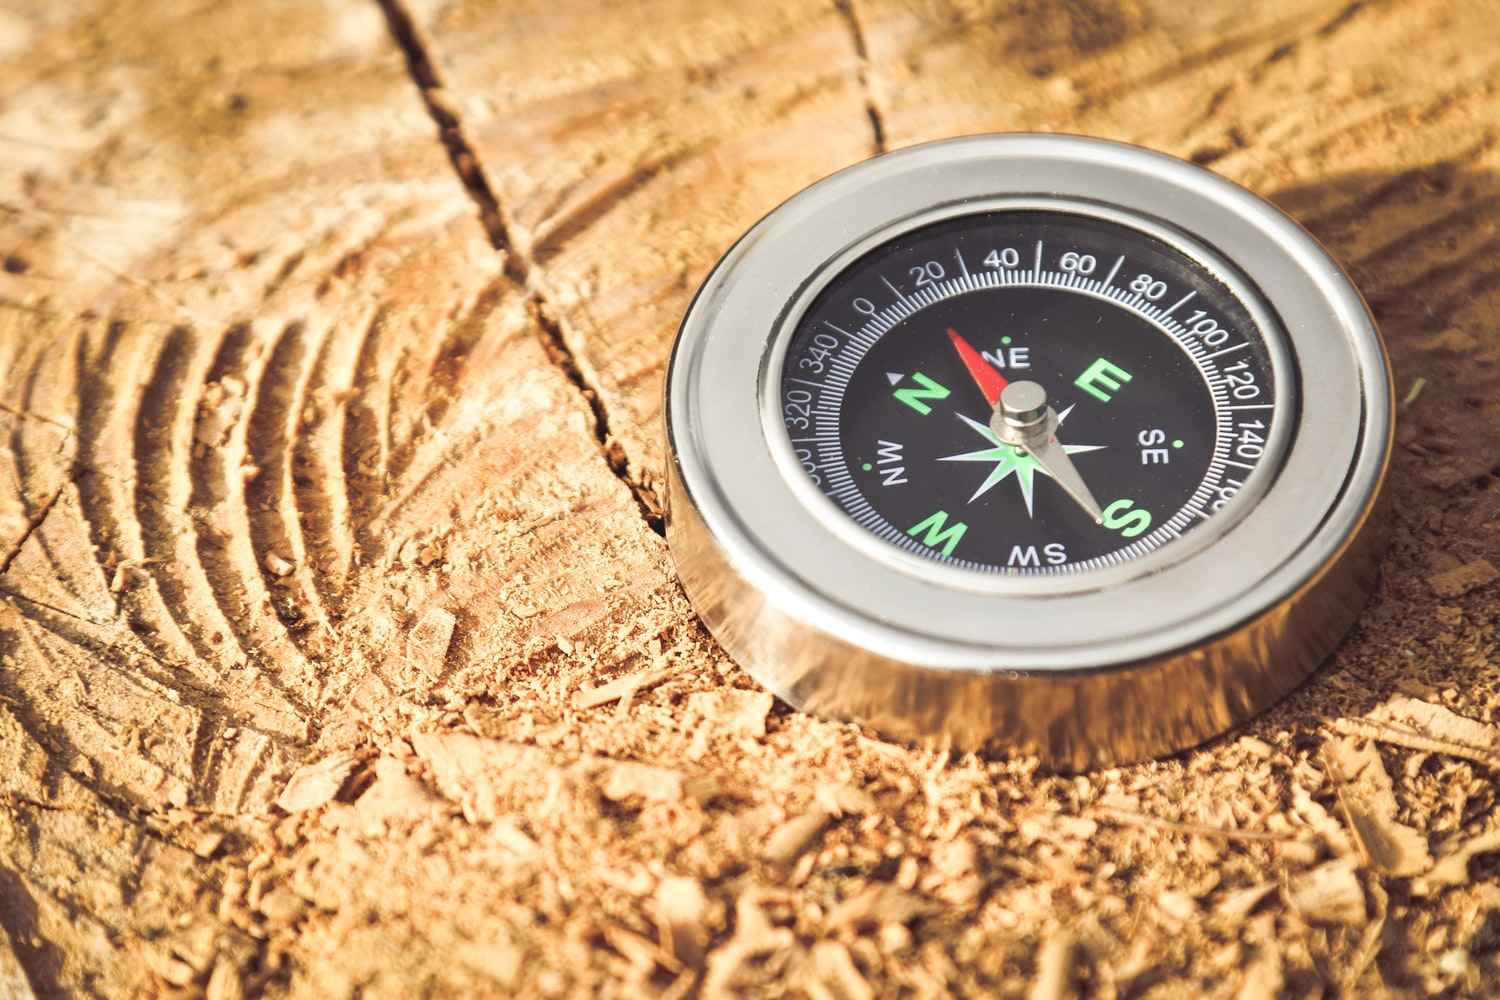 compass in a wooden surface